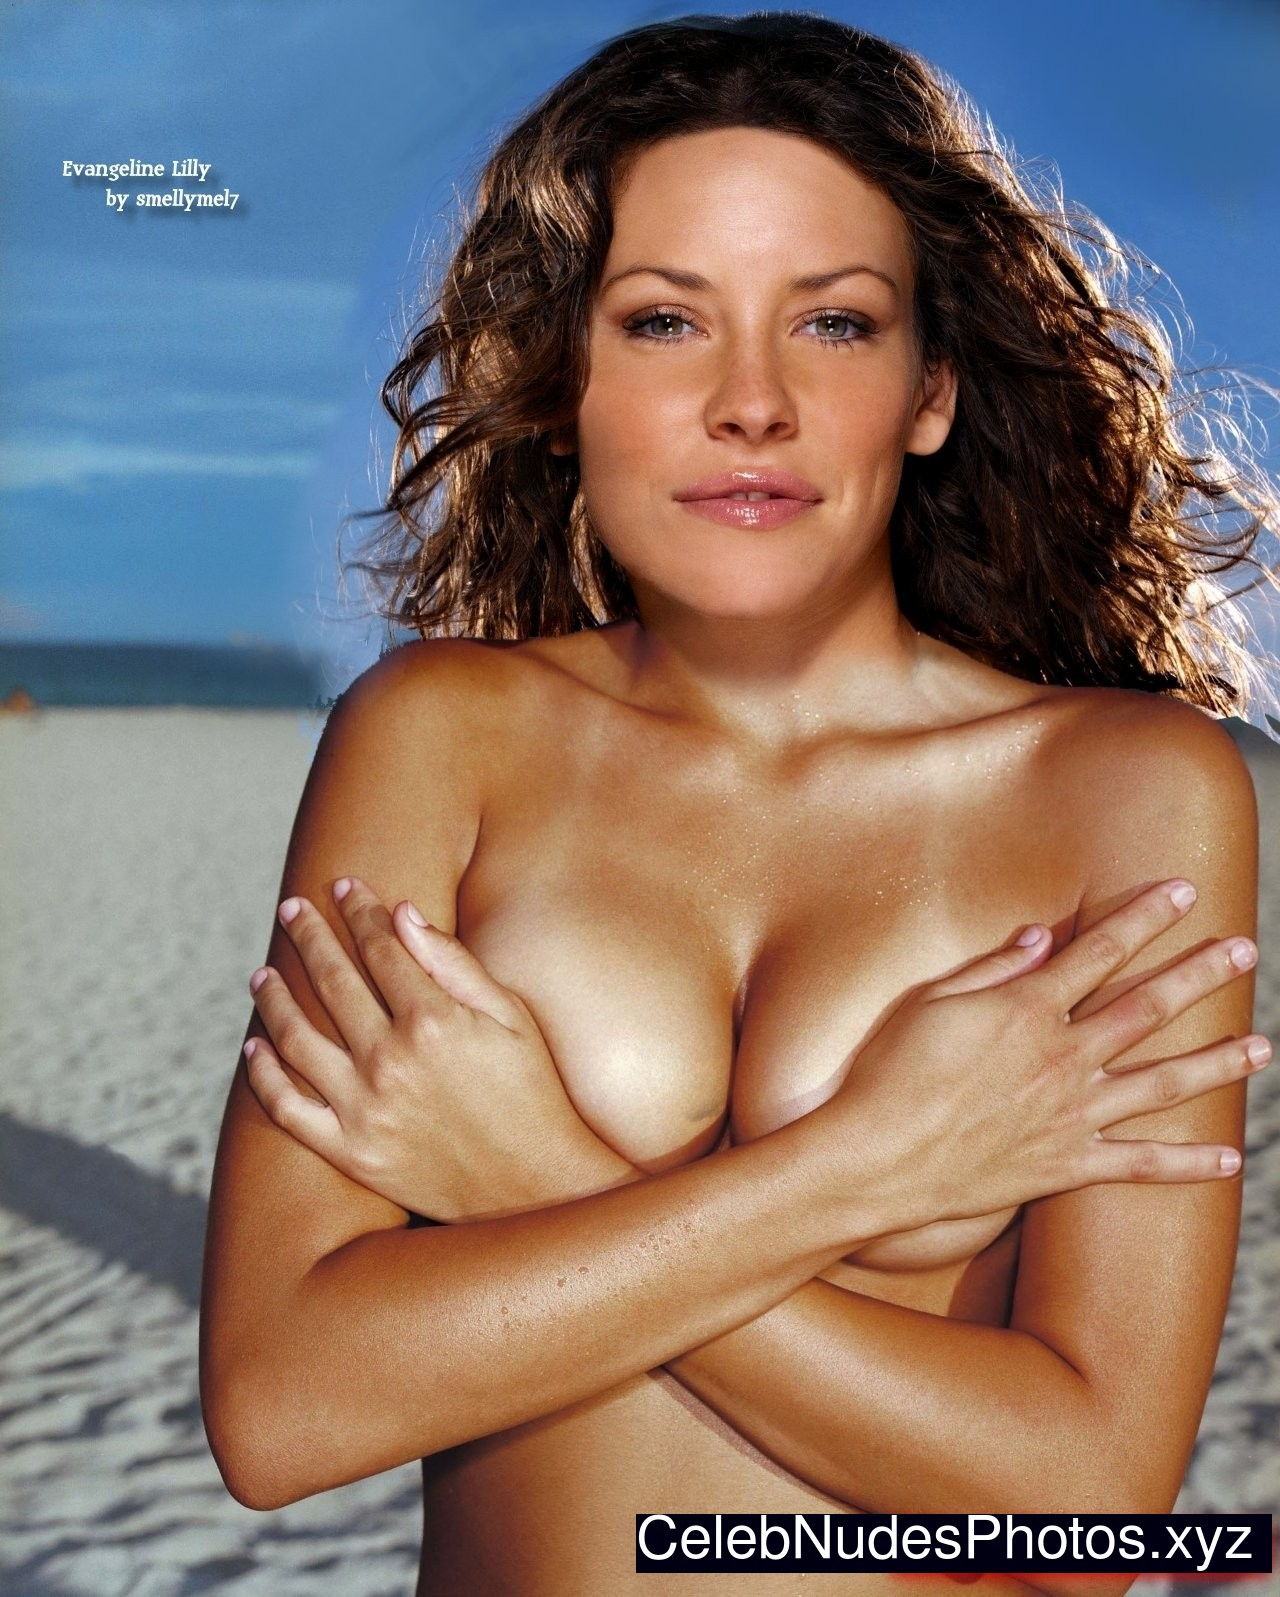 Evangeline Lilly Best Celebrity Nude sexy 1